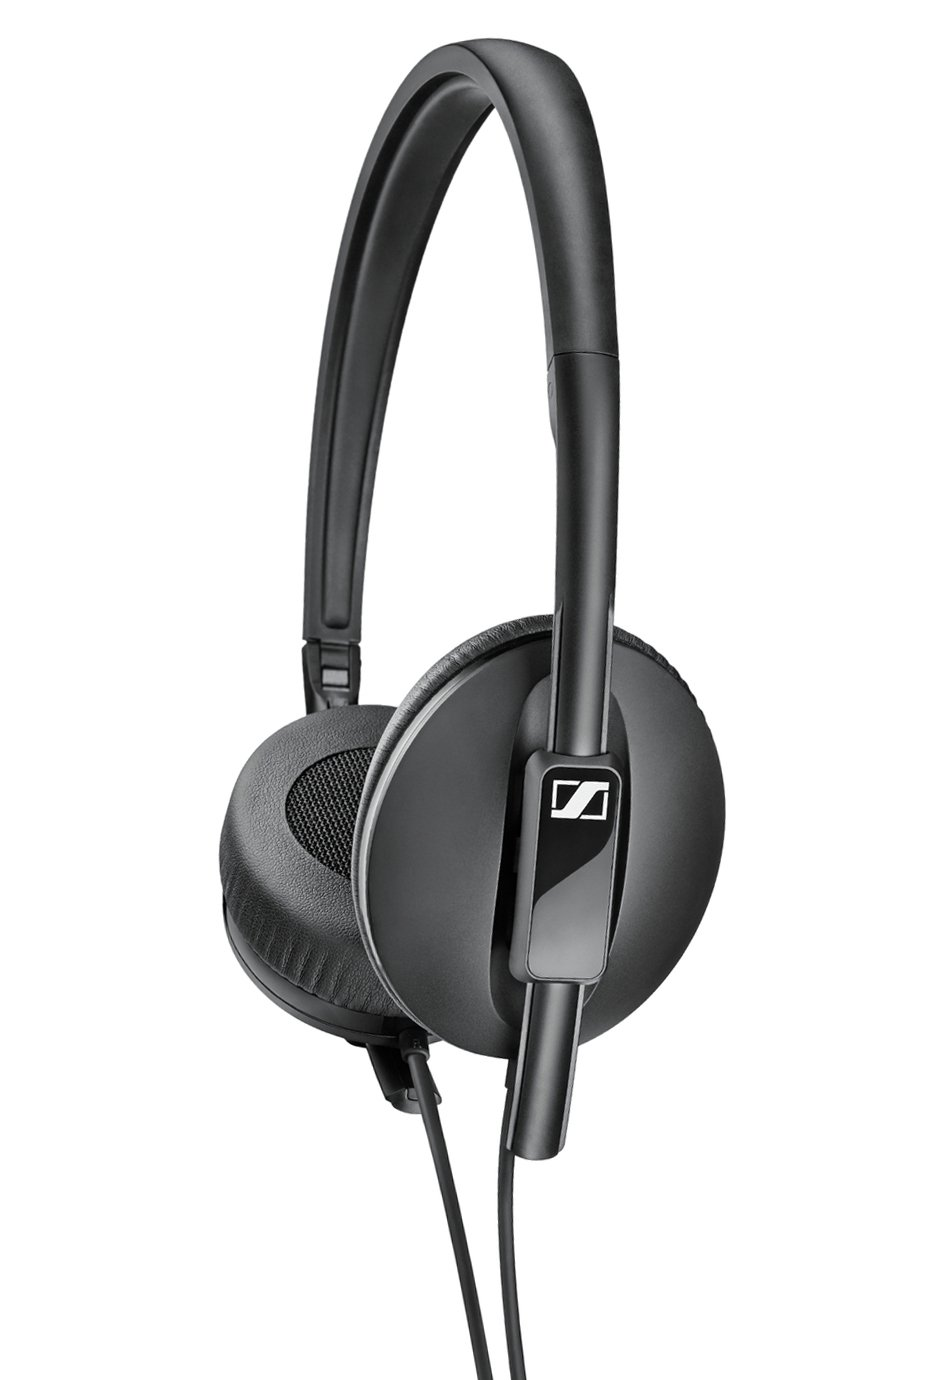 Sennheiser HD 2.10 On-Ear Foldable Headphones - Black